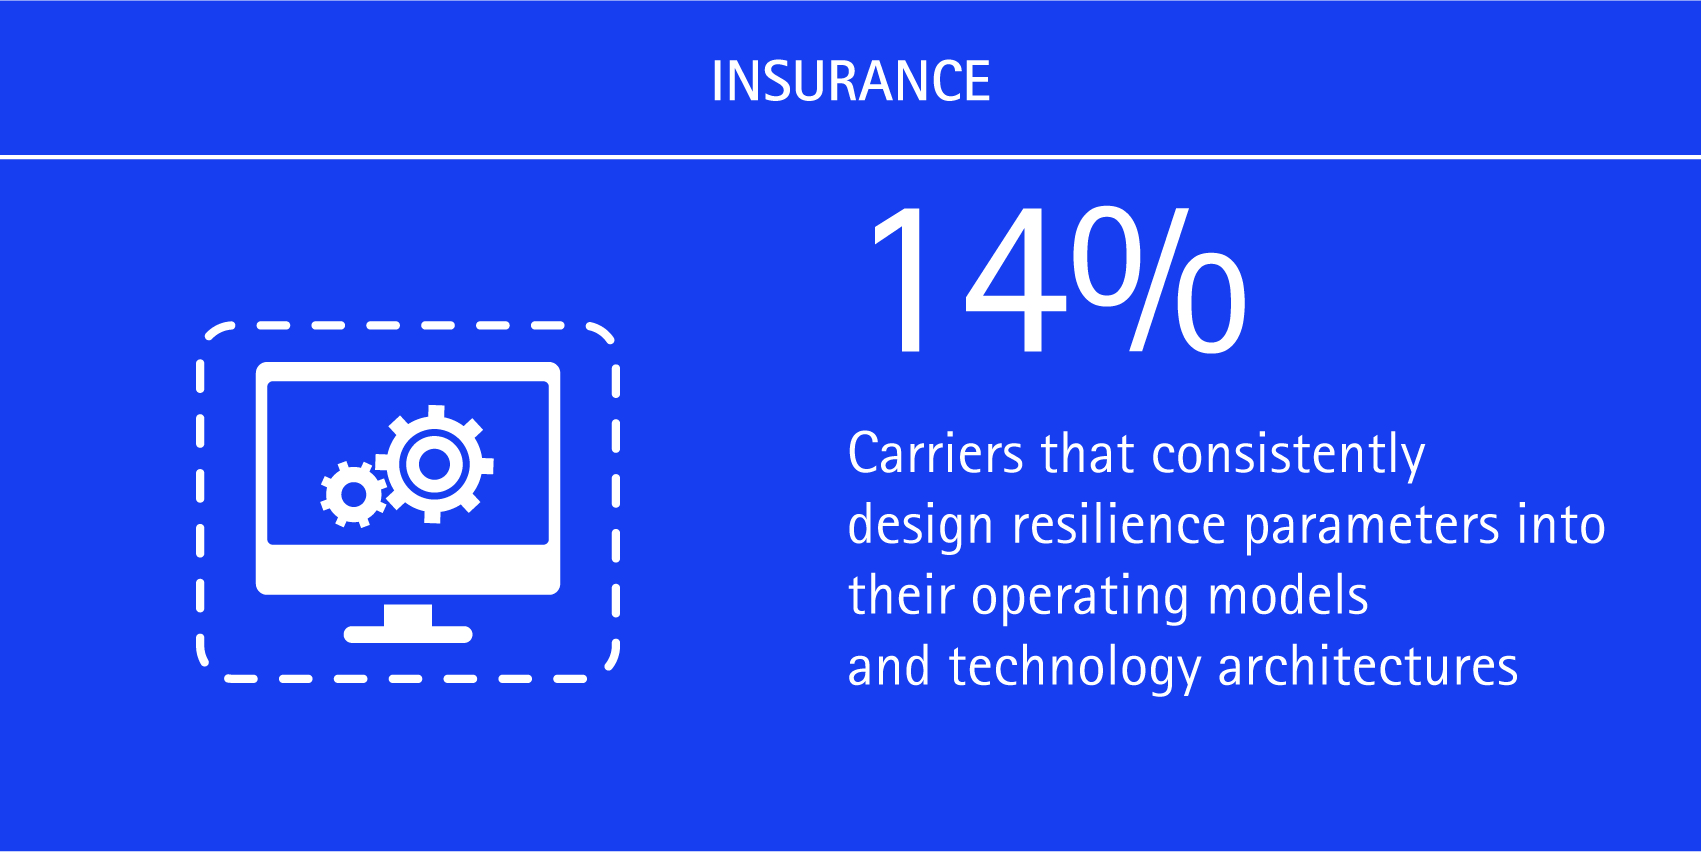 14% of carriers consistently design resilience parameters into their operating models and technology architectures.